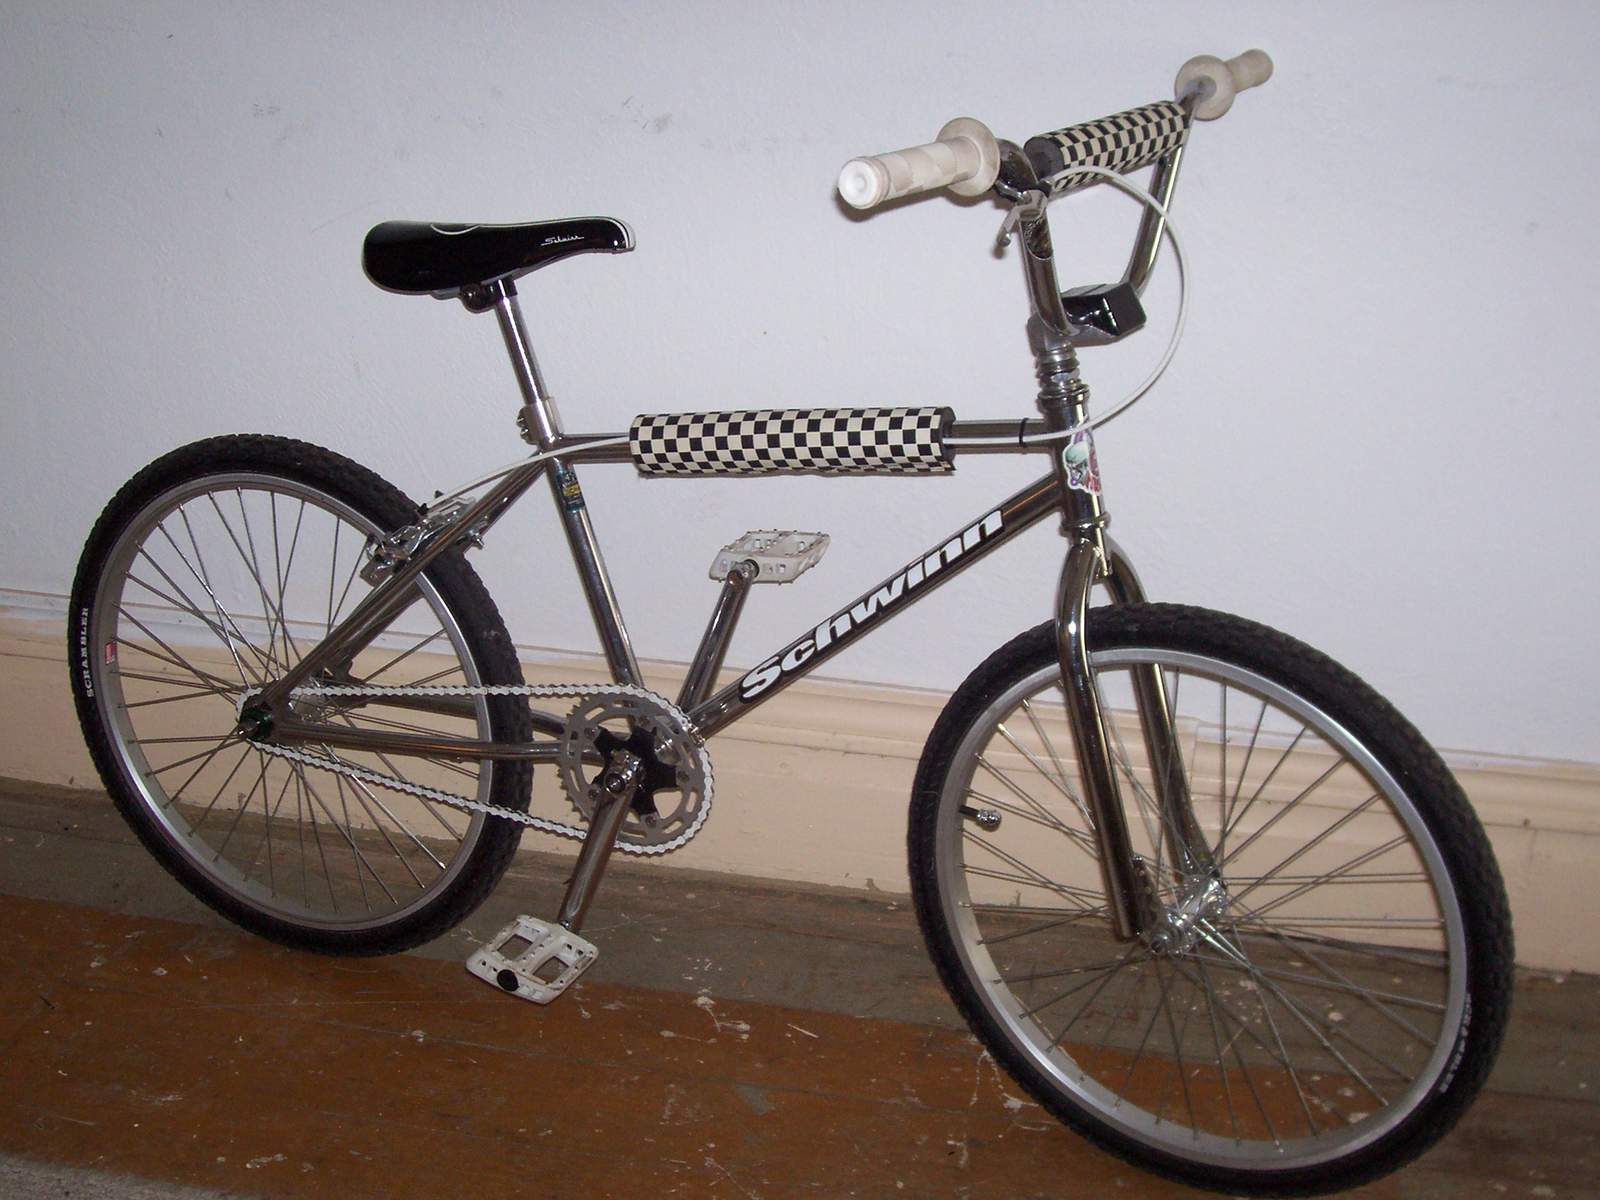 http://uploads.bmxmuseum.com/user-images/61851/100_967859a67d3c38.jpg